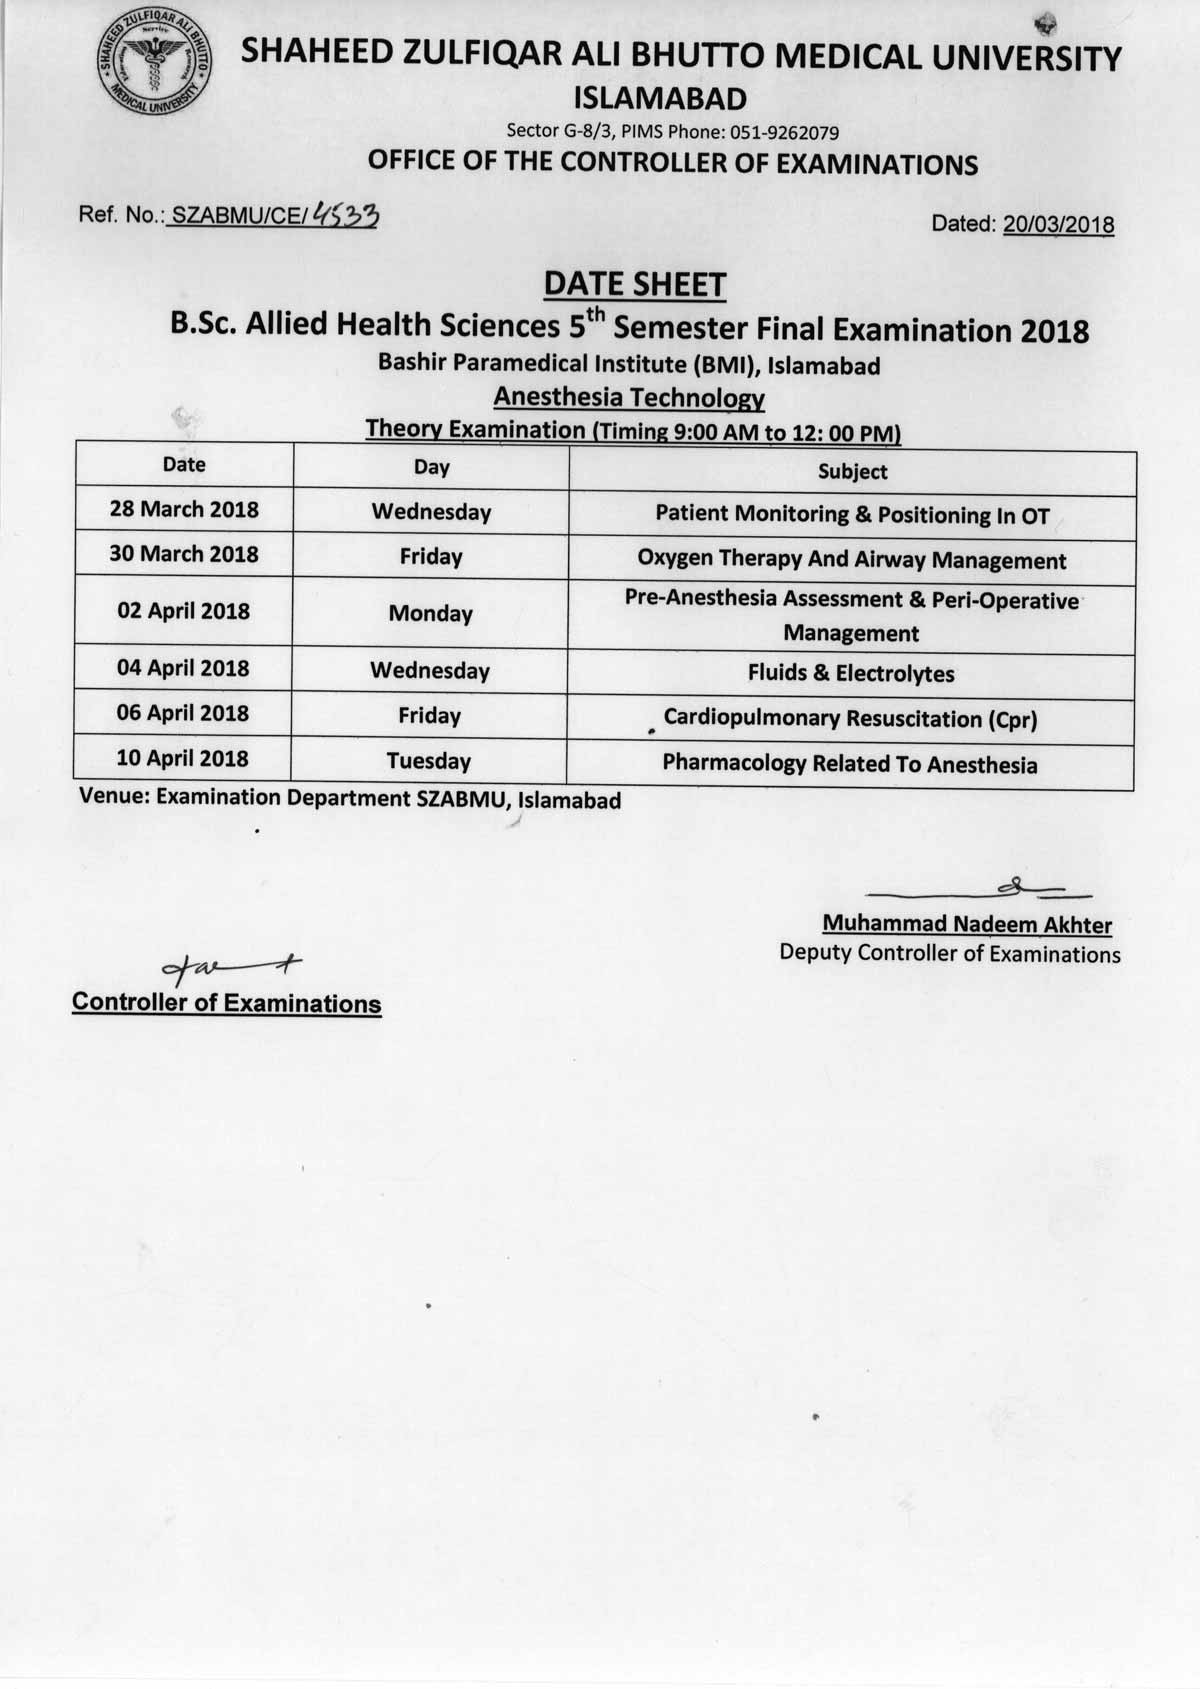 Date Sheet - BS Allied Health Sciences Final Examinations 2018